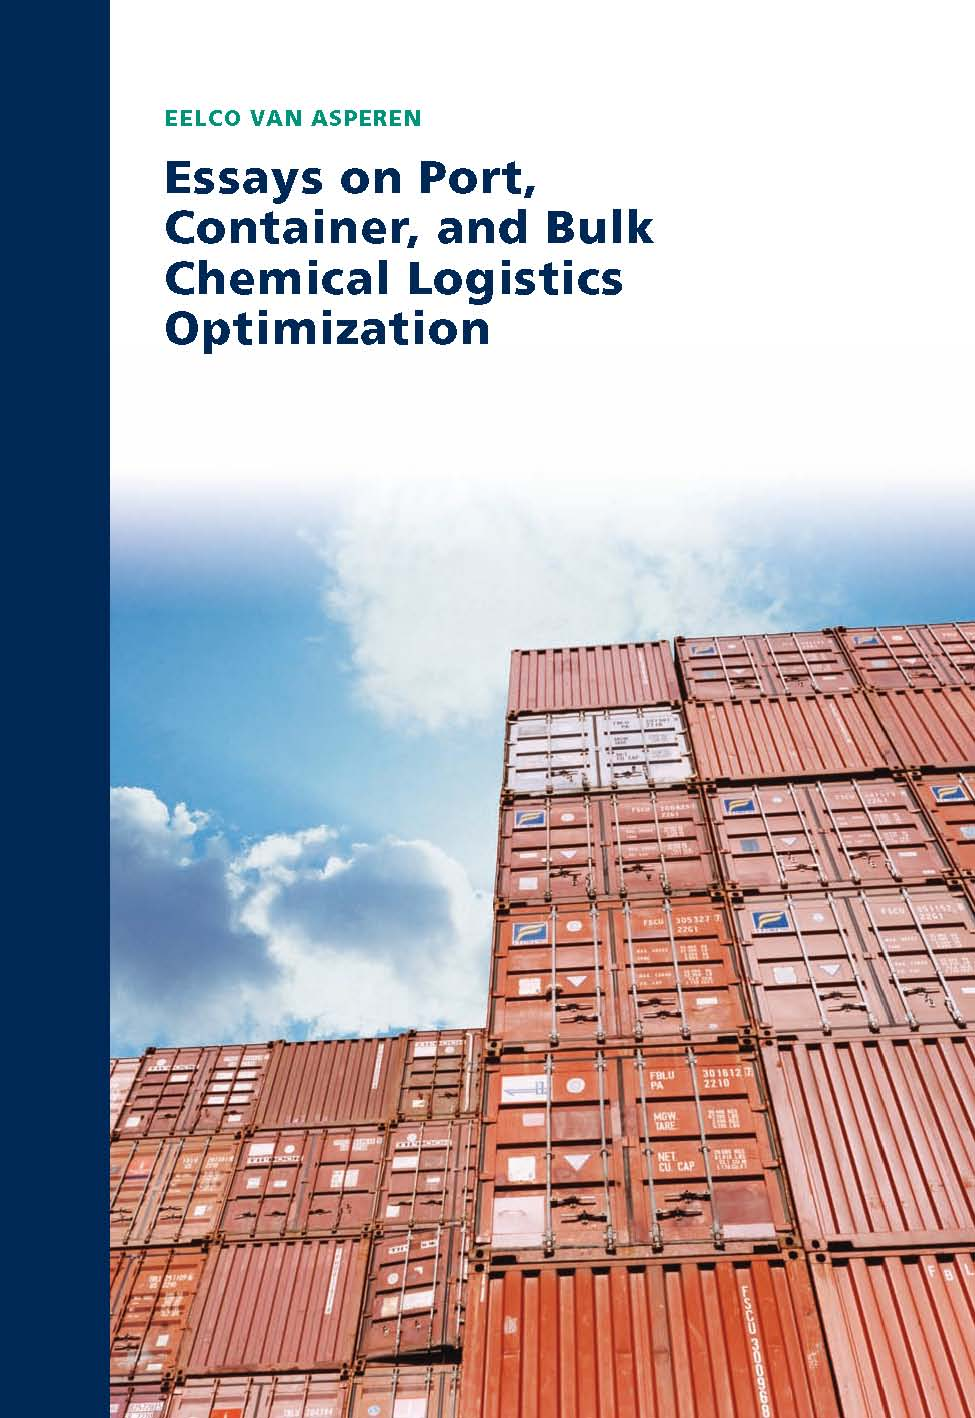 Essays on Port, Container, and Bulk Chemical Logistics Optimization